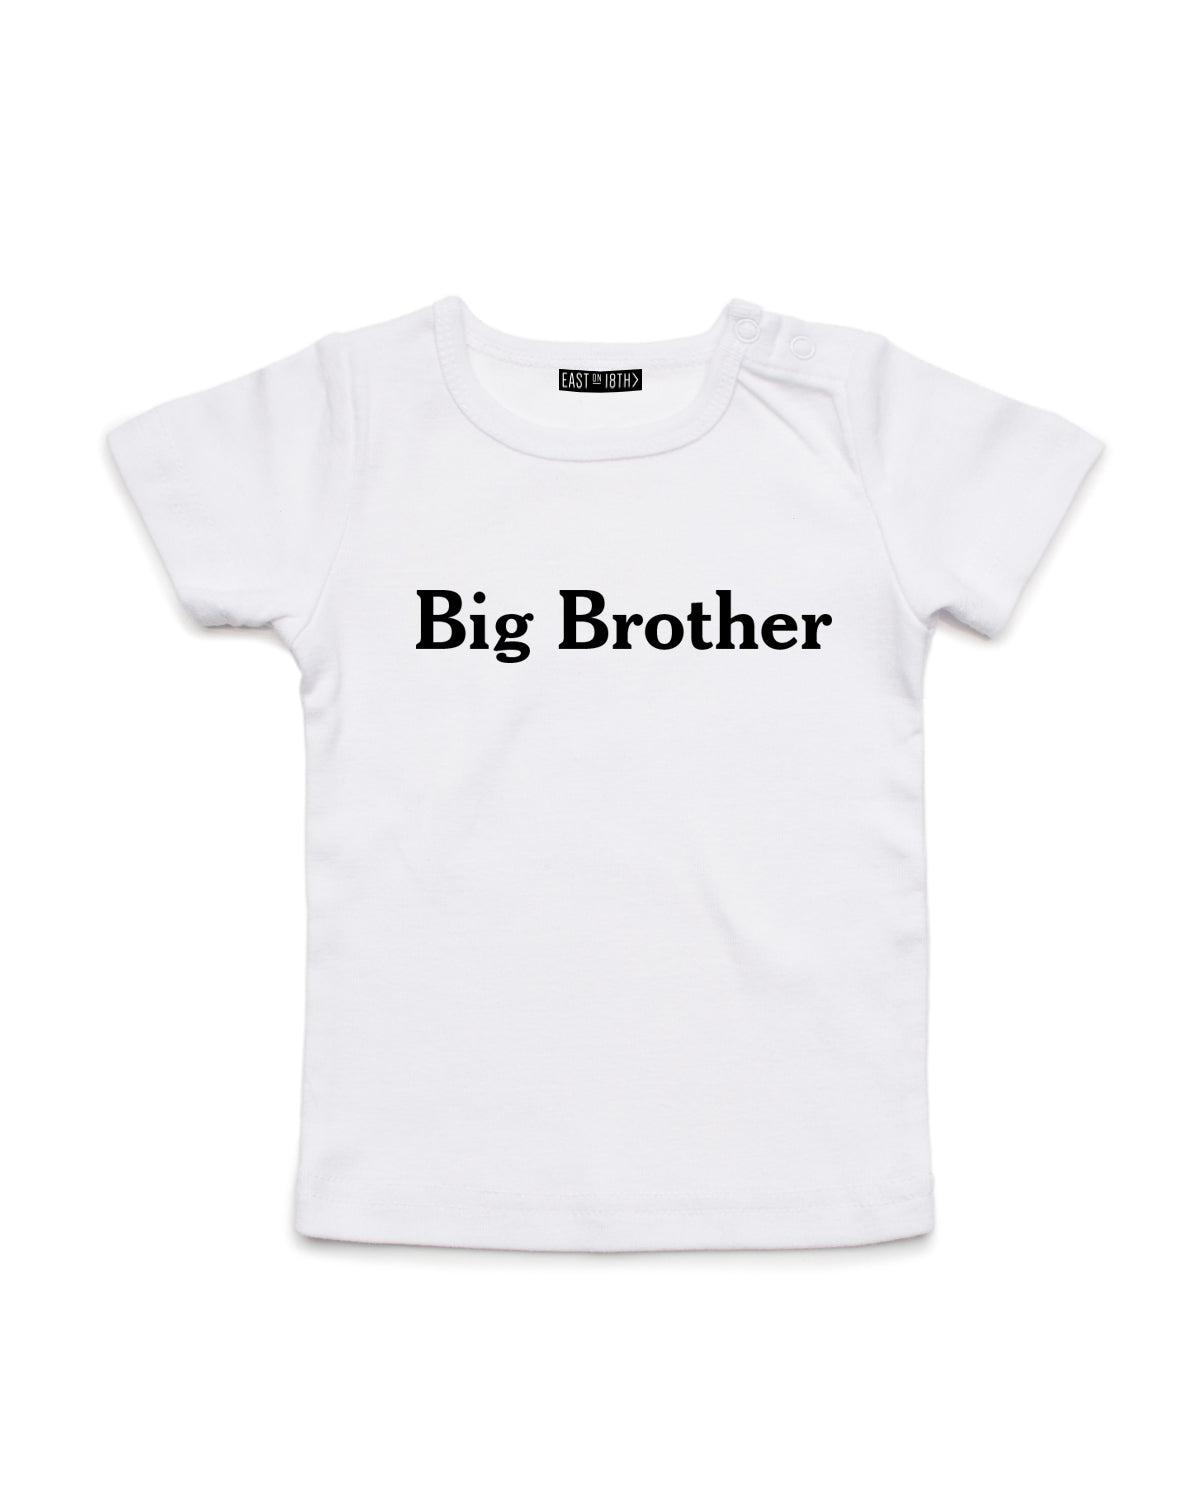 Brother | Baby T-Shirt - Personalised Clothing | EAST ON 18th